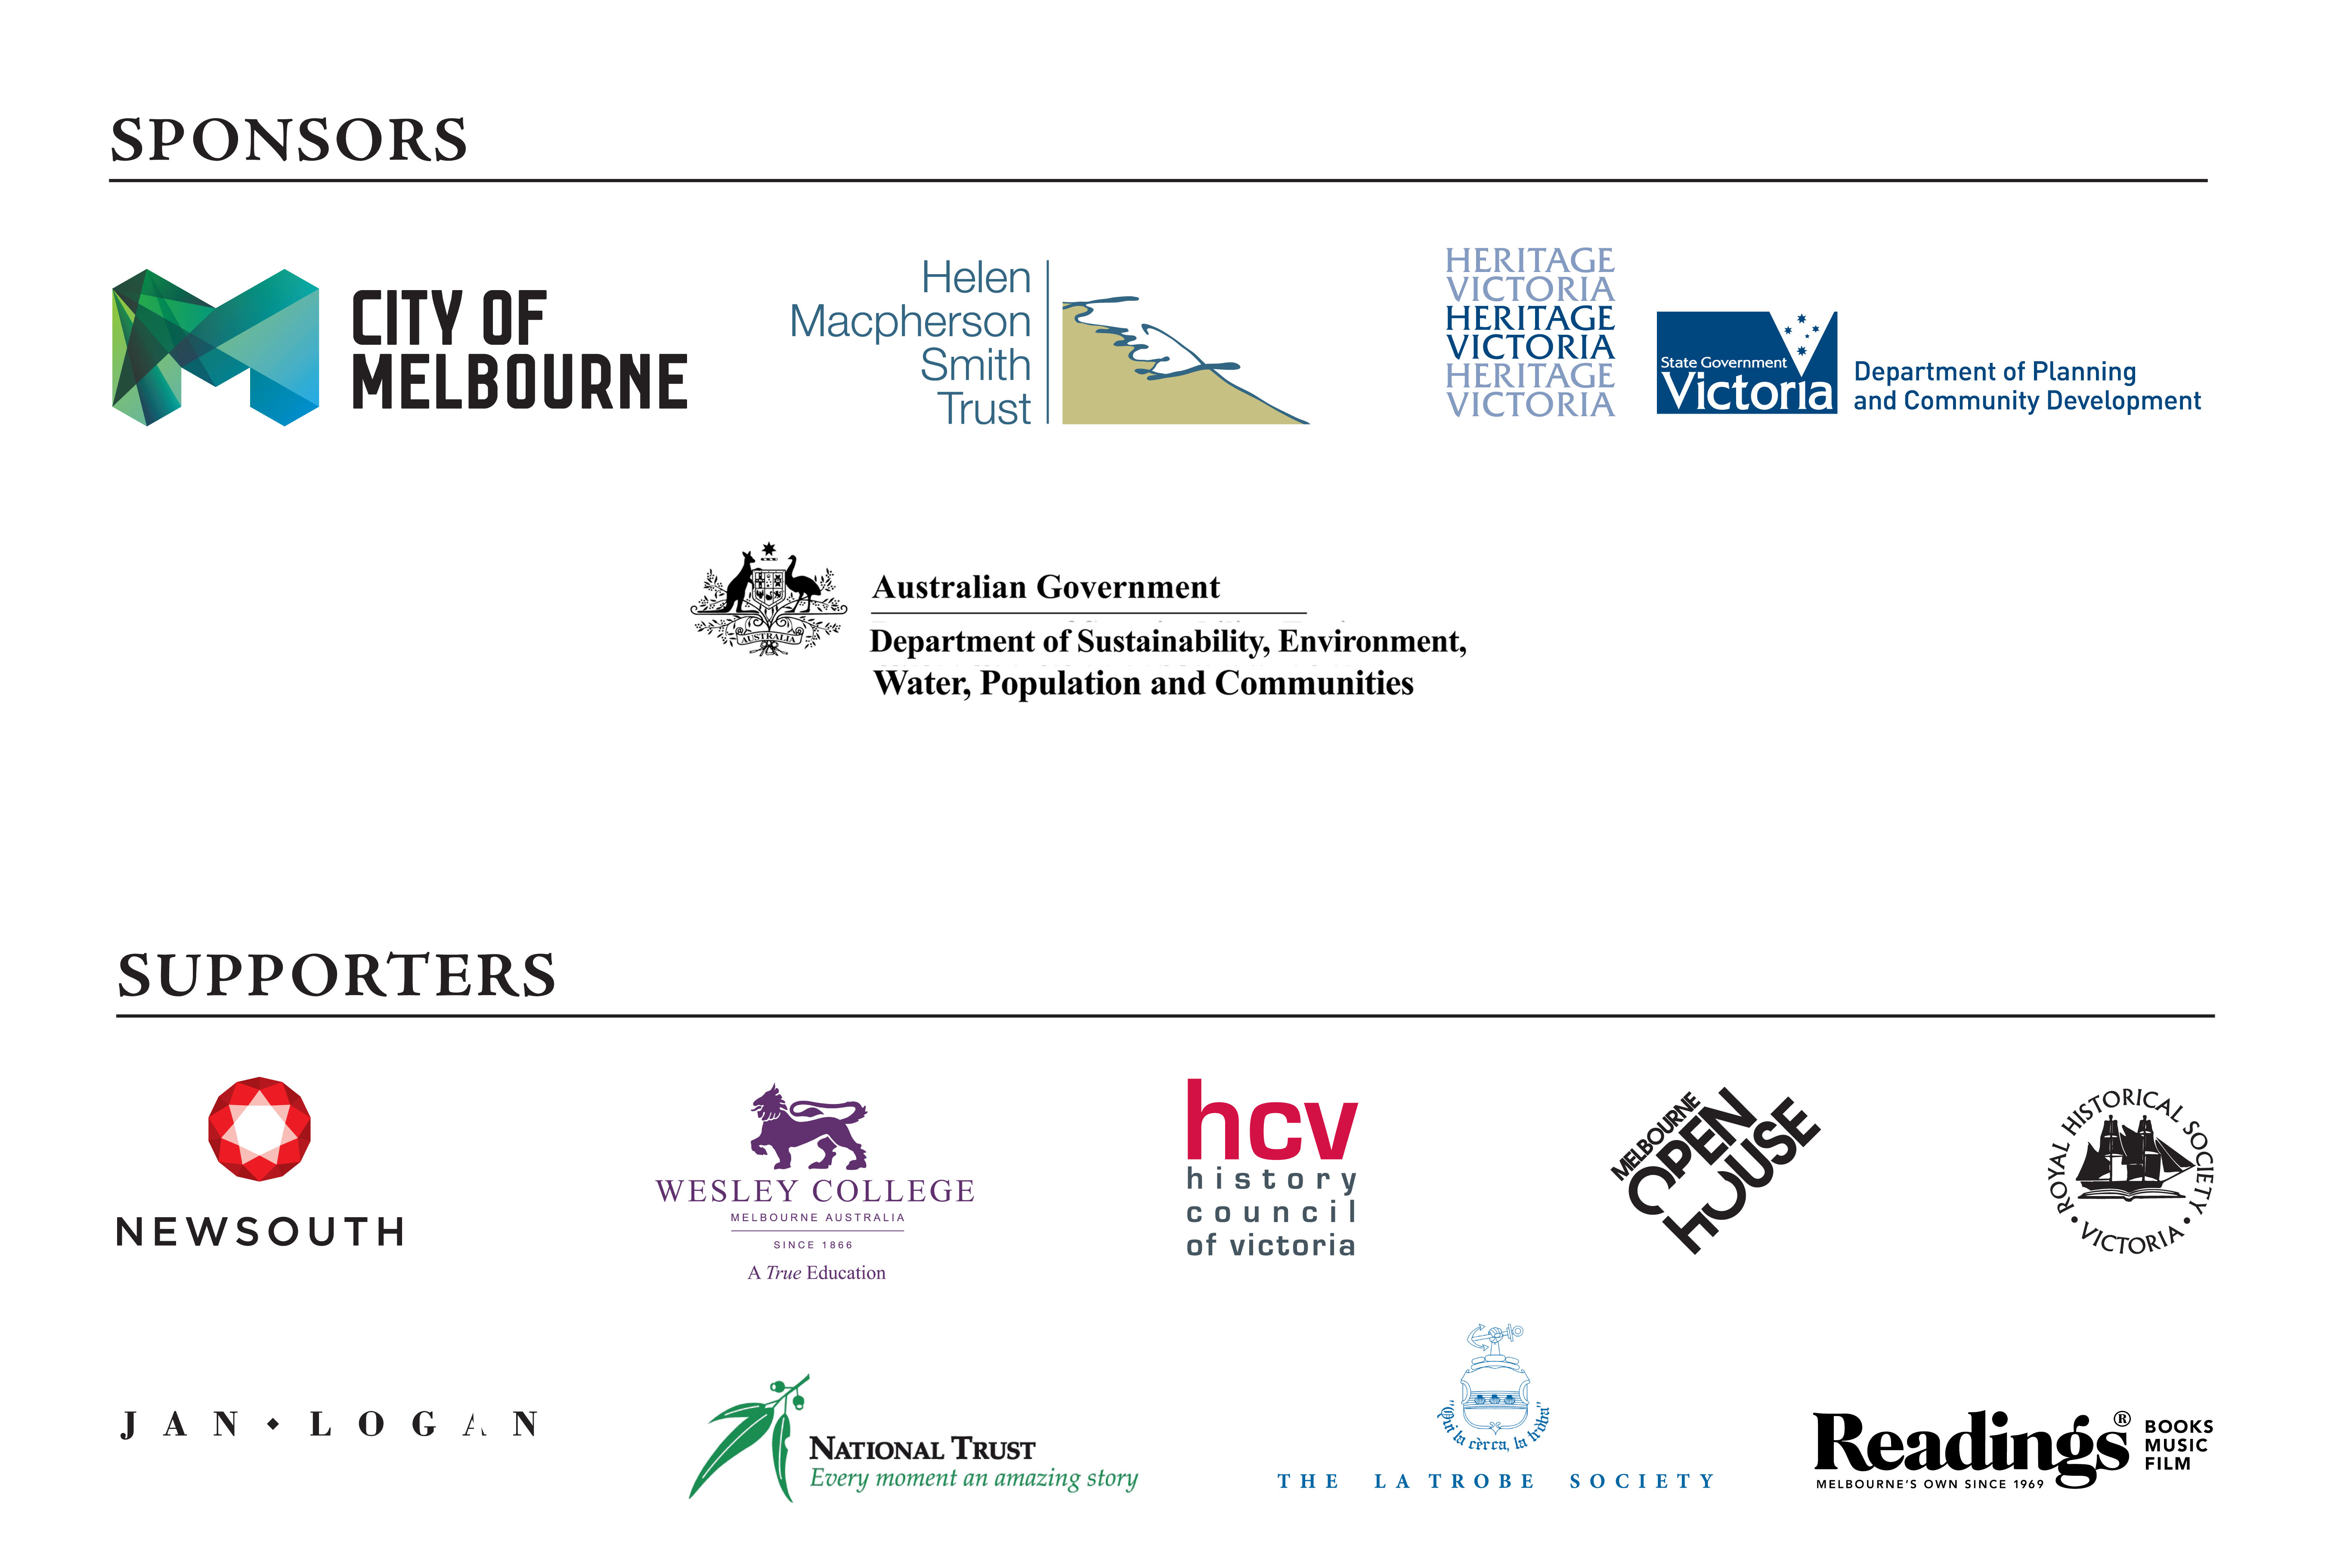 Sponsors and supporters of Gold & Governors, the 150th anniversary celebration of the Old Treasury Building.